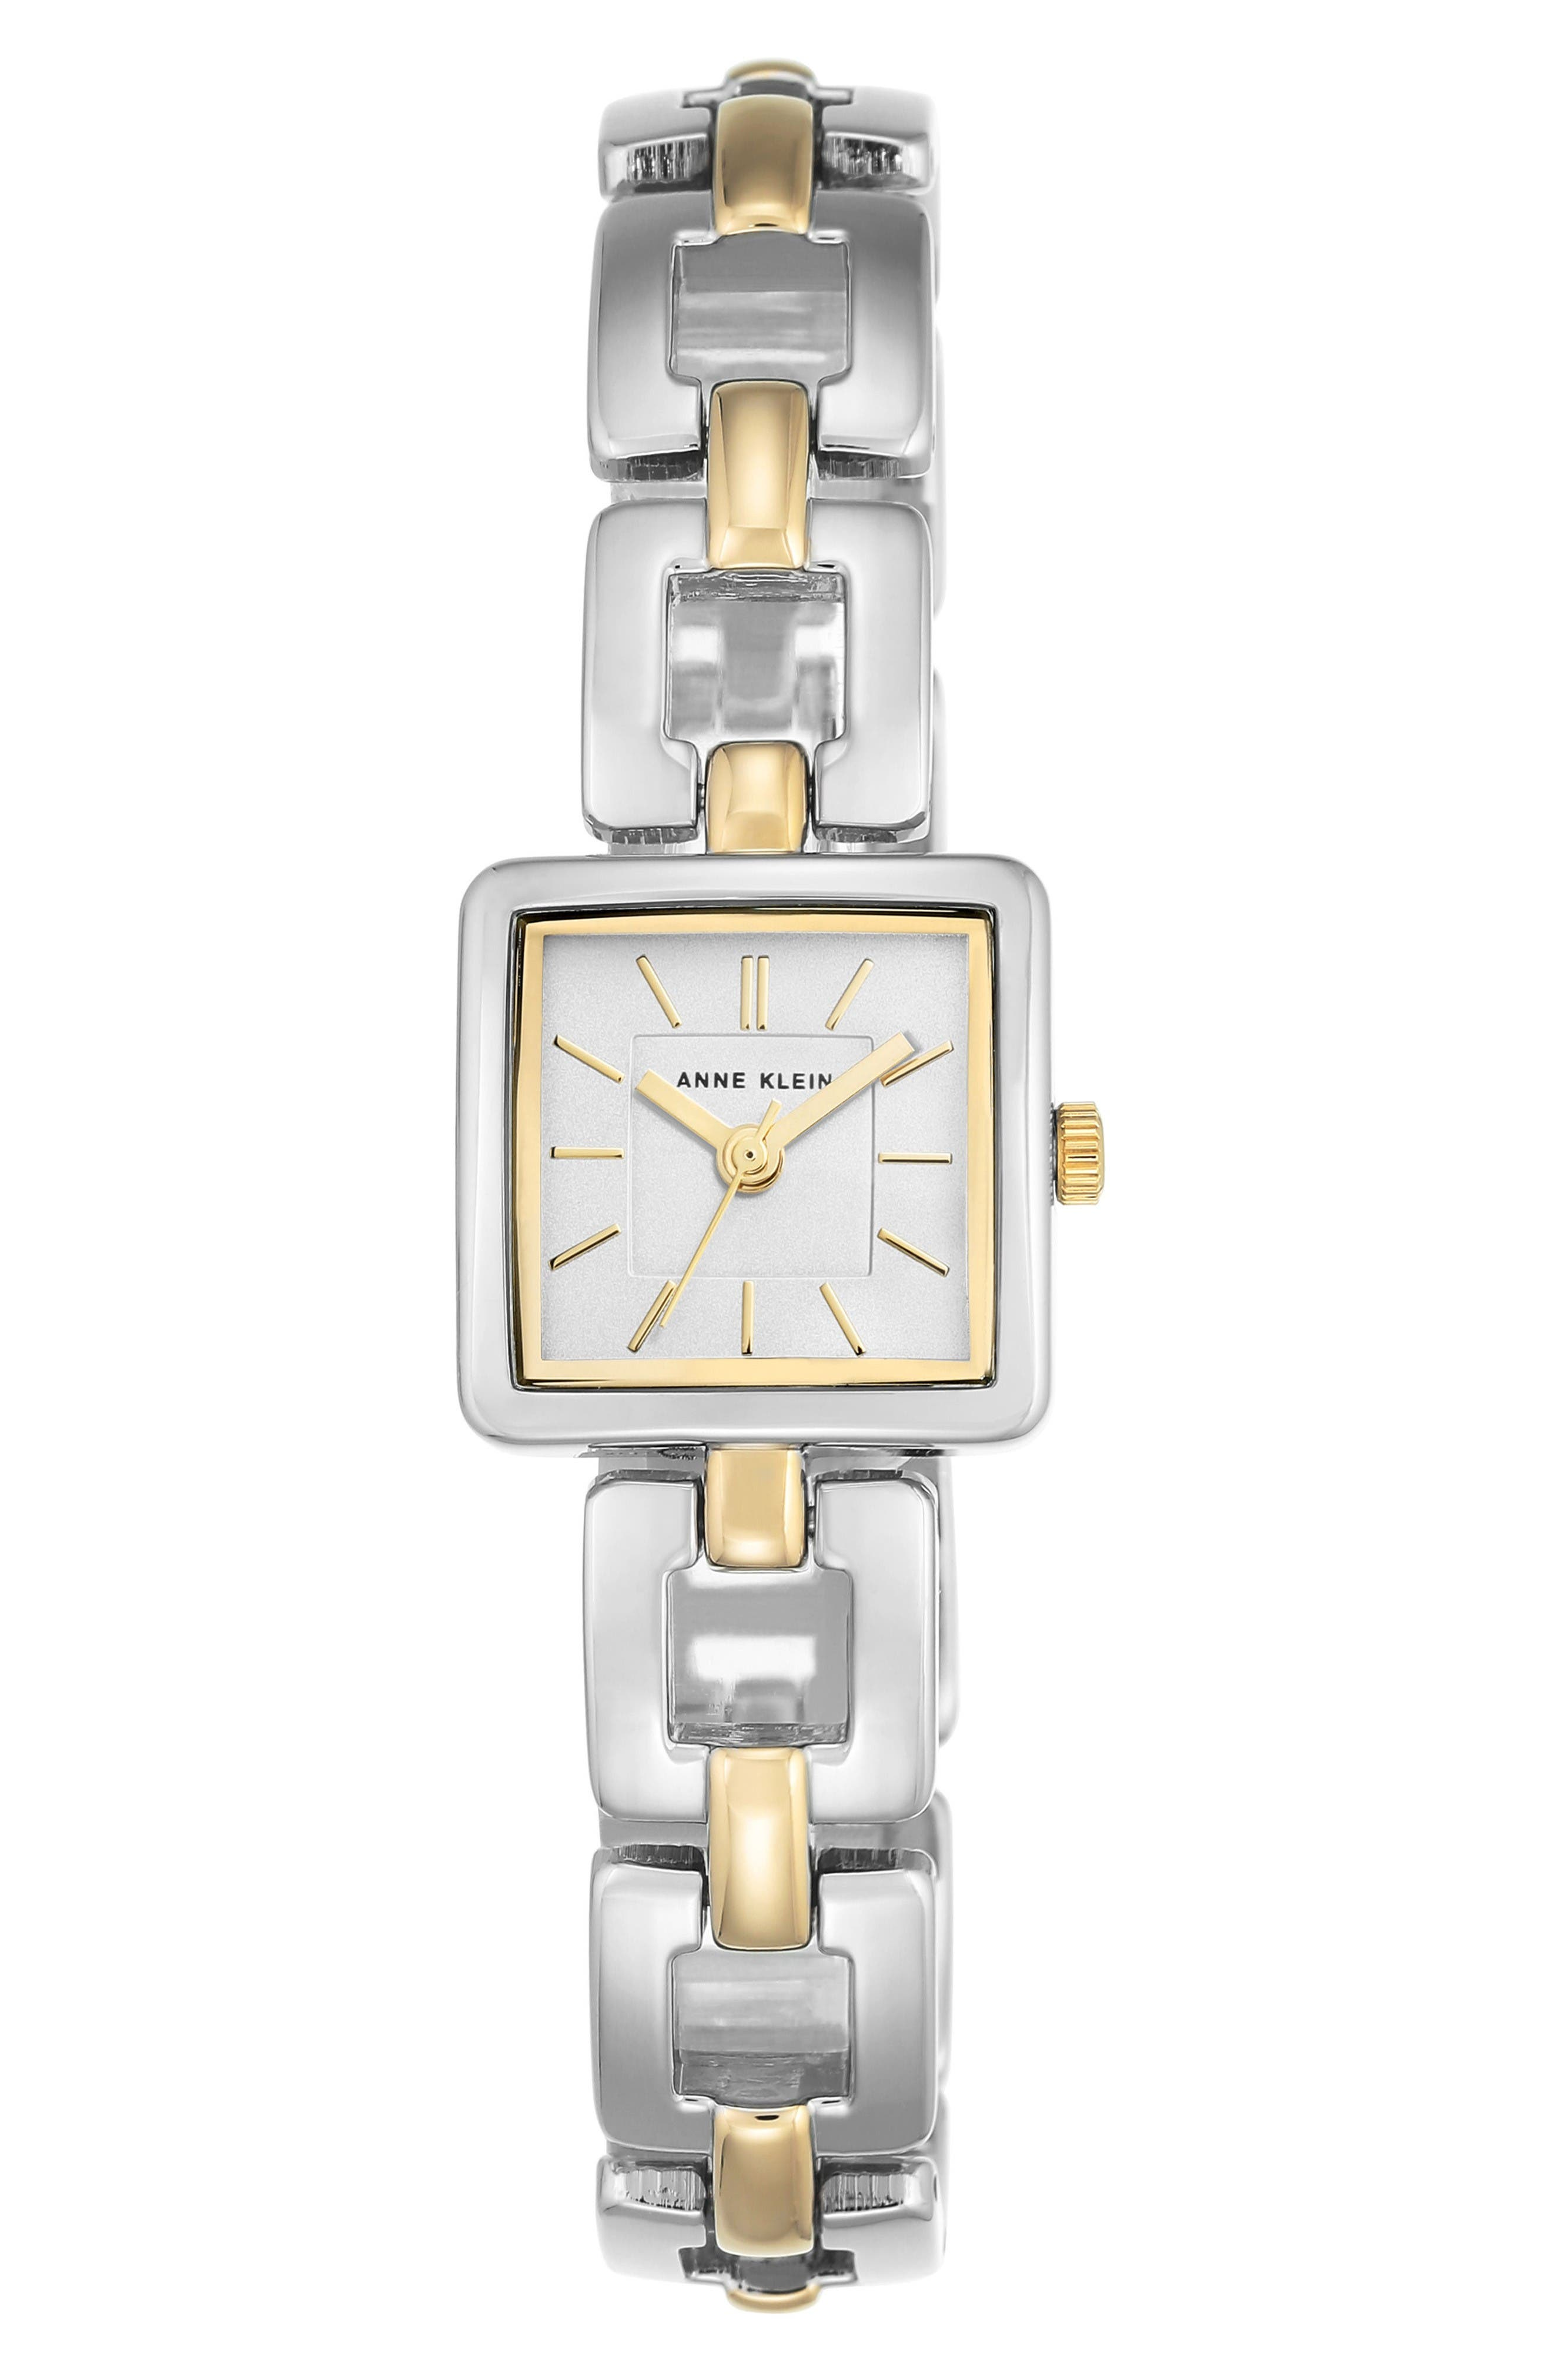 Anne Klein Square Bracelet Watch, 20mm